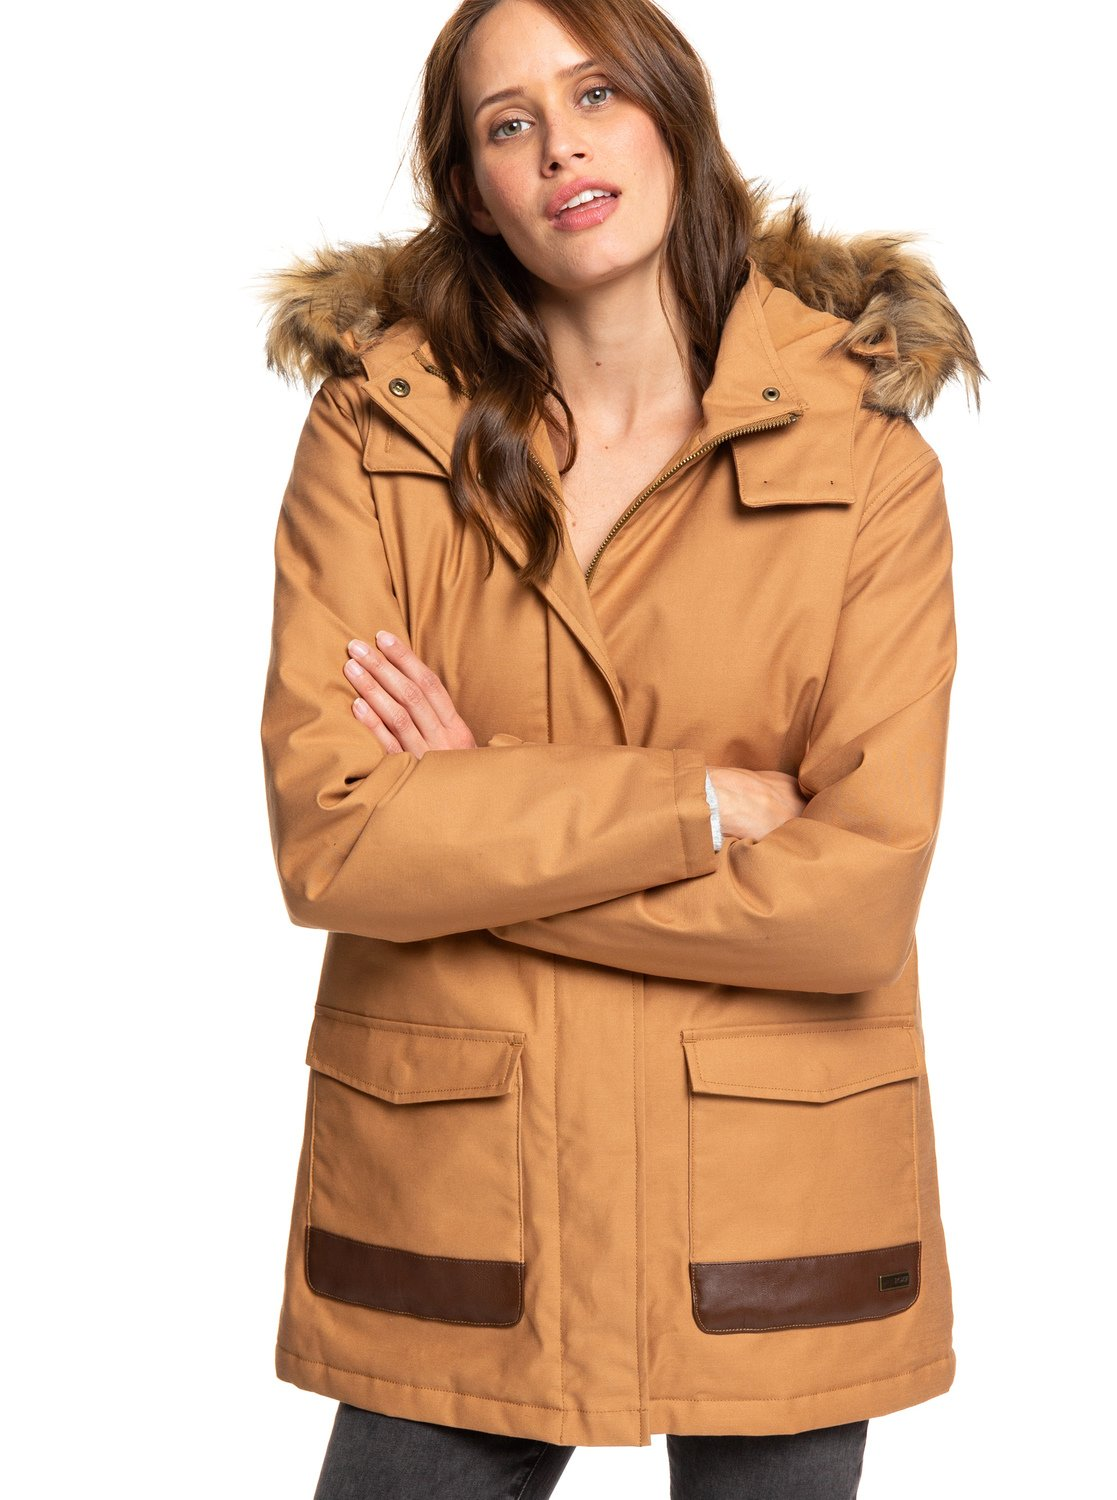 15a019c74116 Travelling West - Parka con Capucha para Mujer